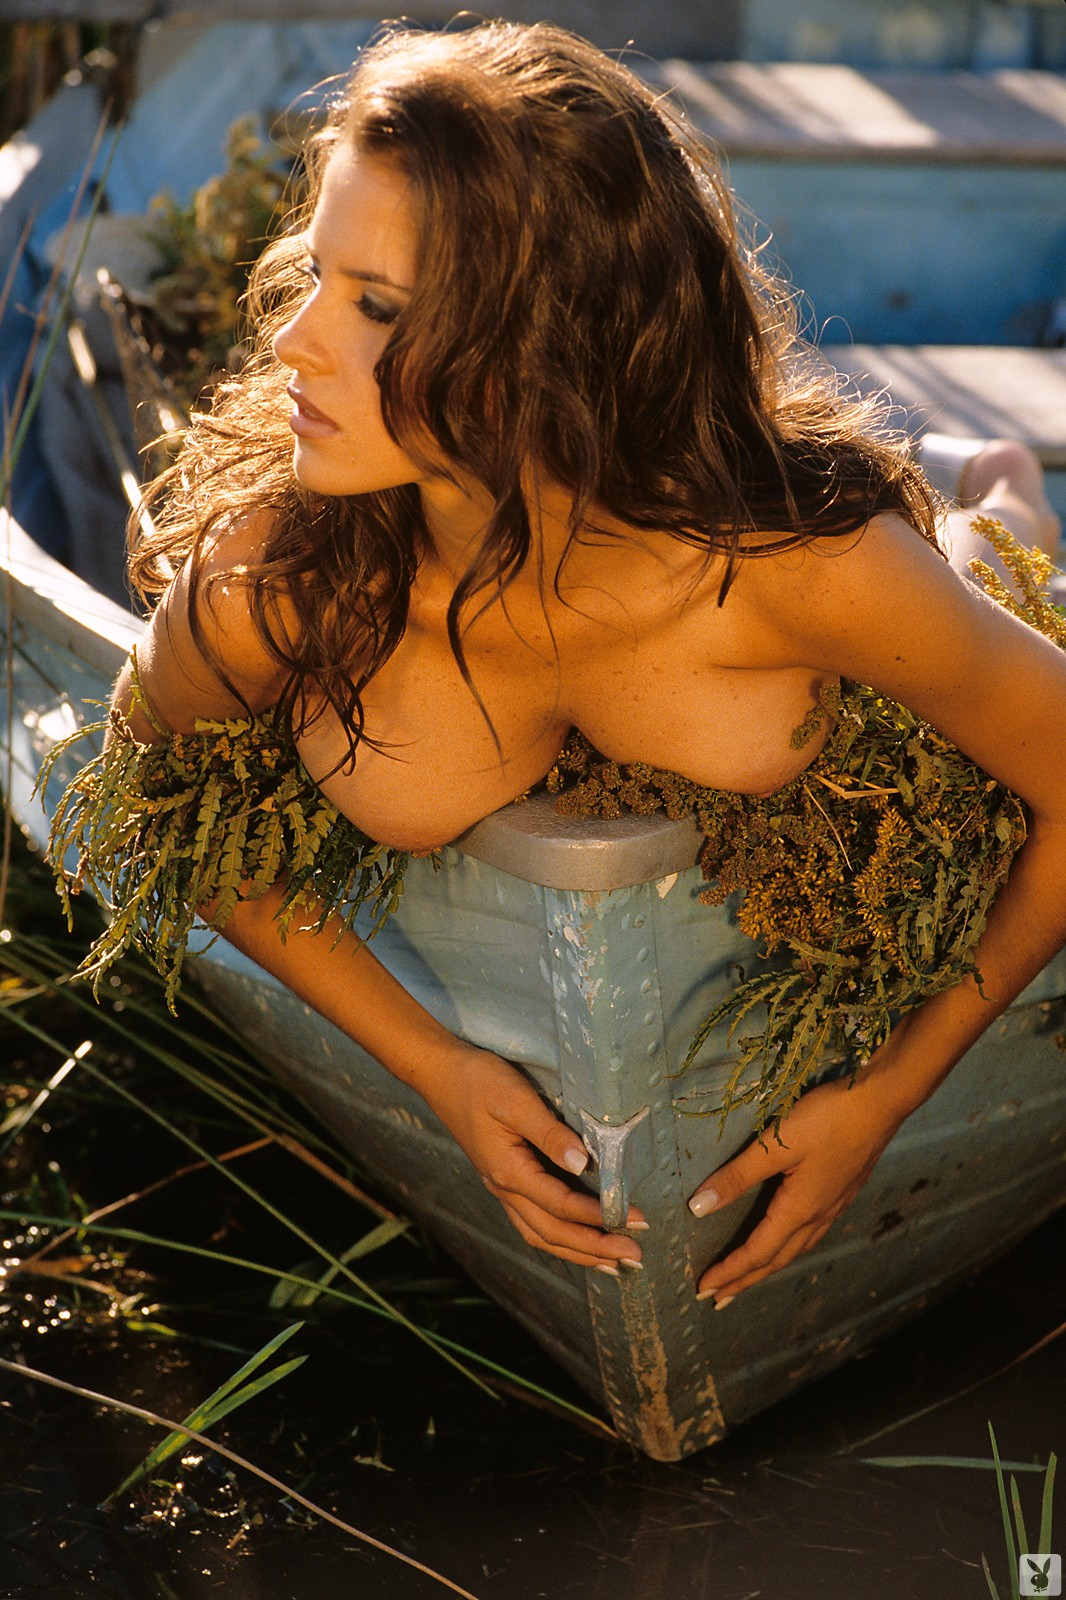 Kelly Monaco Nude - Page 4 Pictures, Naked, Oops, Topless, Bikini, Video, Nipple-6342